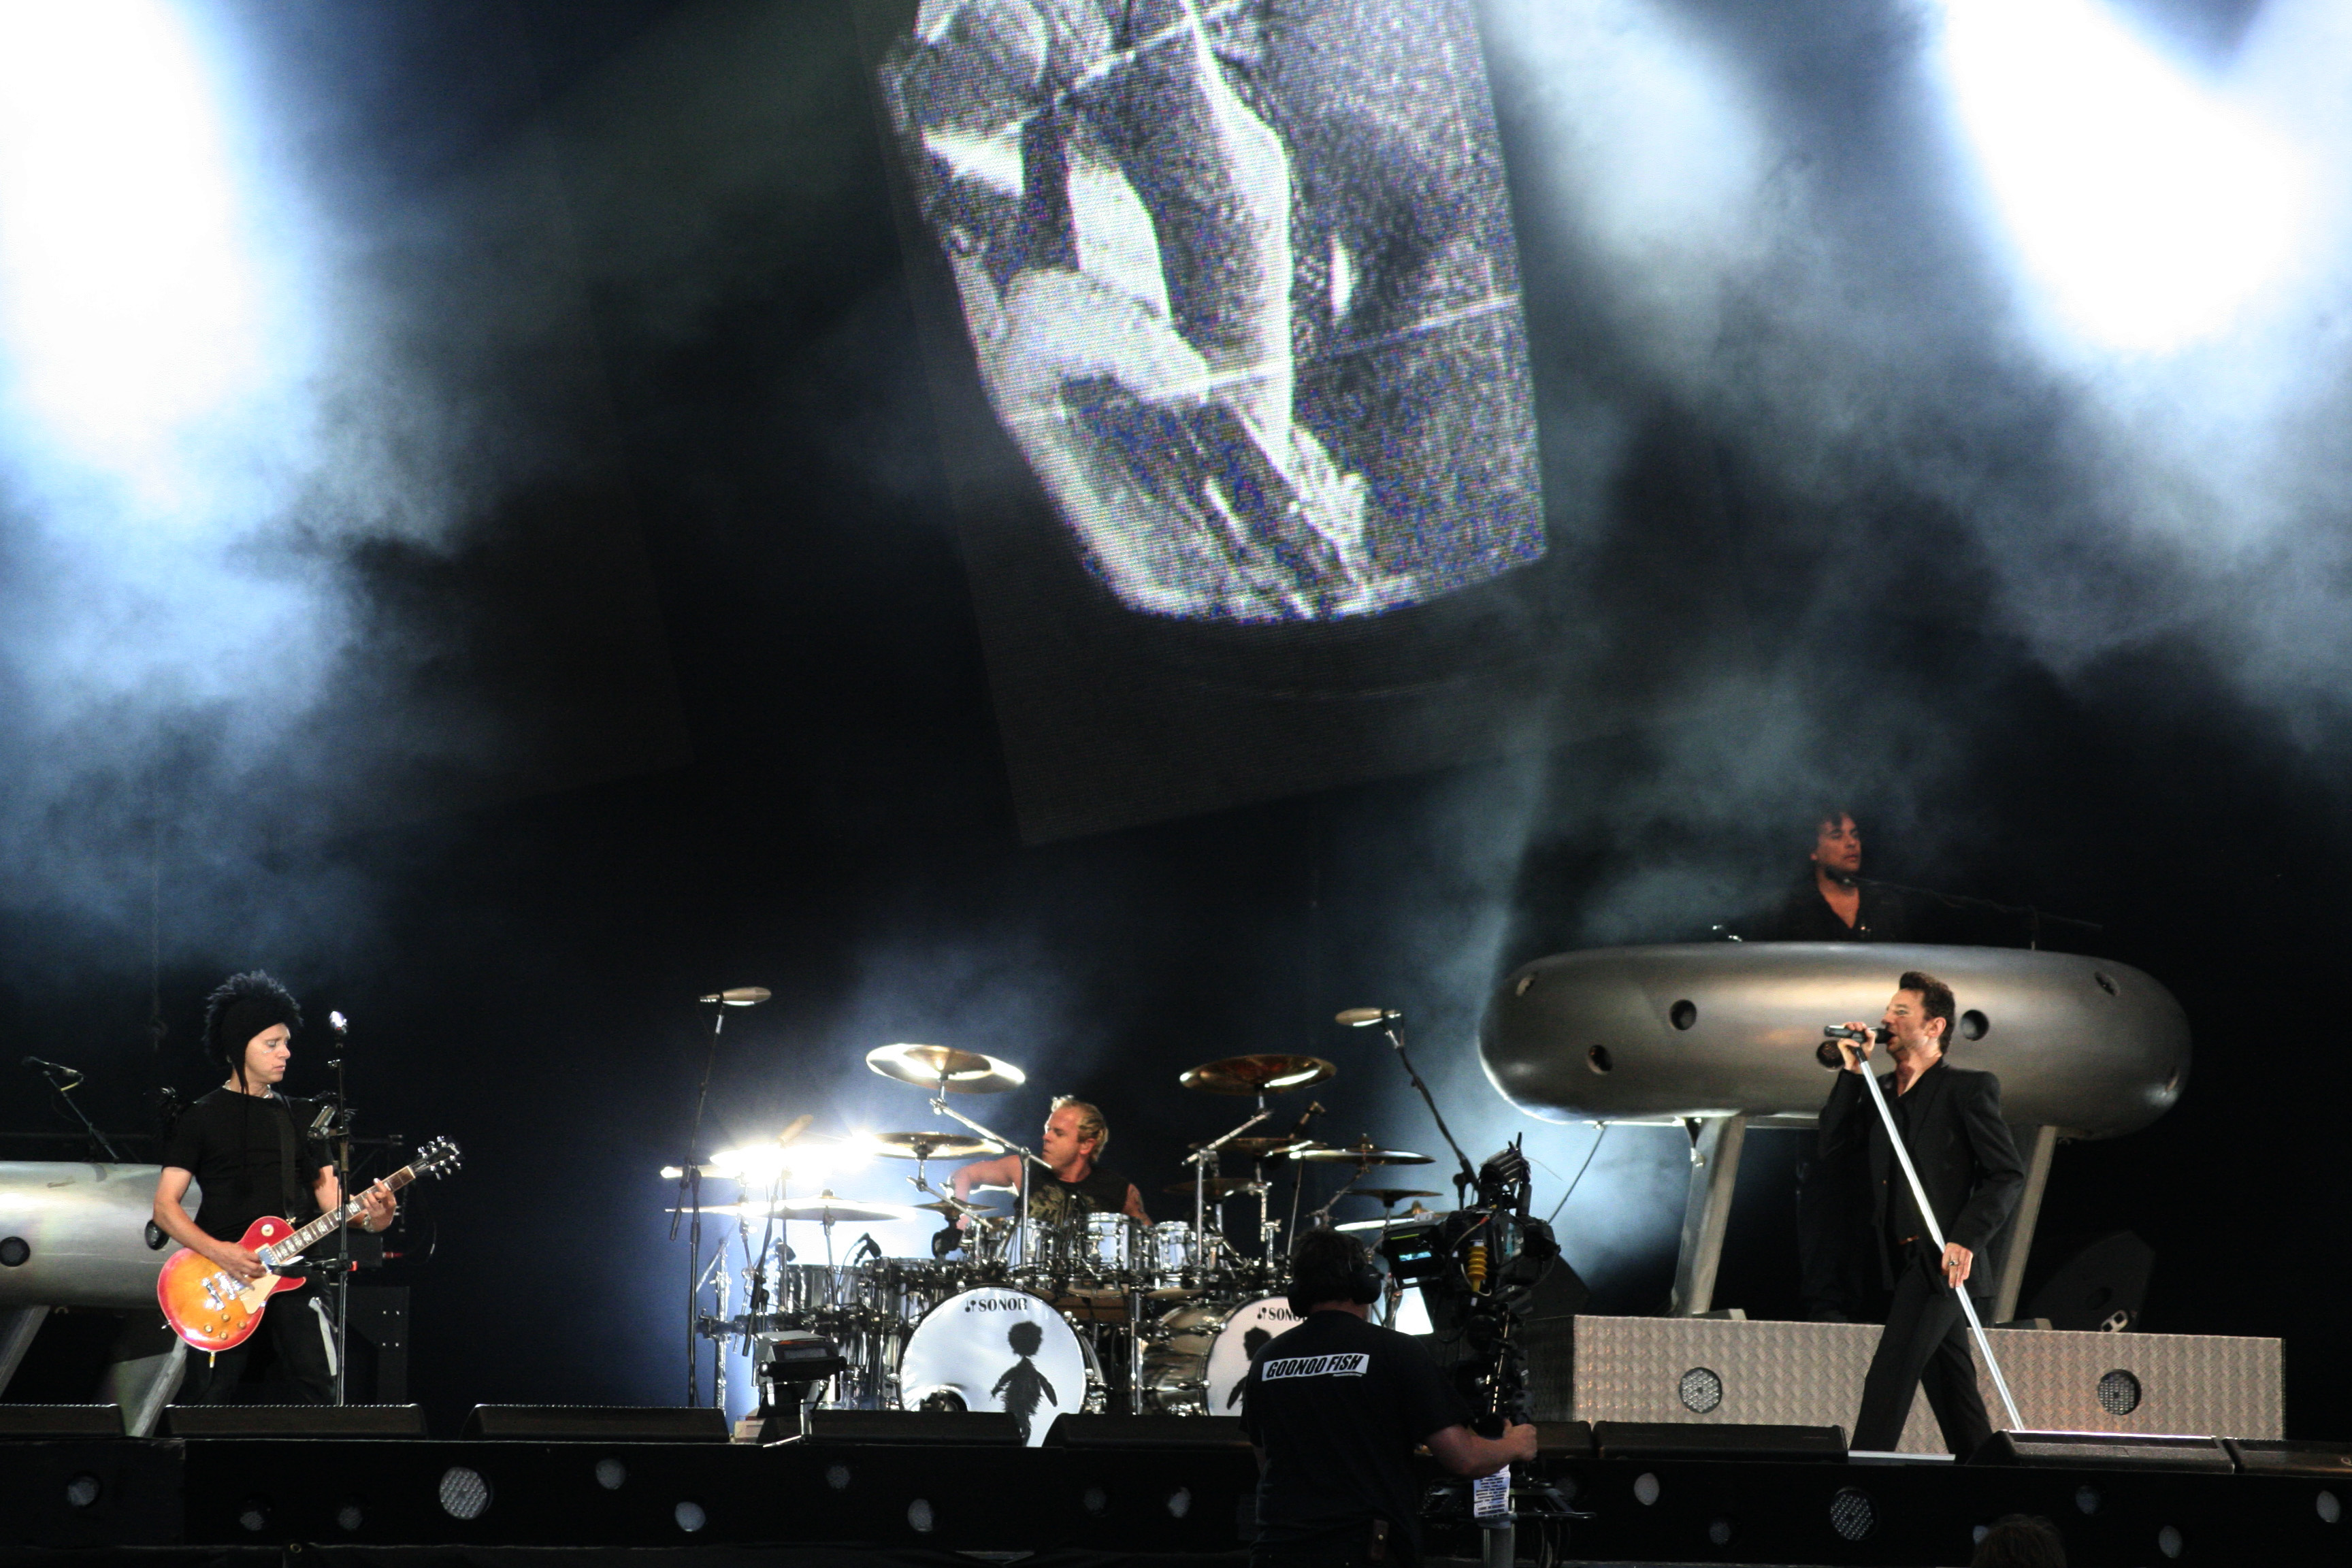 http://upload.wikimedia.org/wikipedia/commons/9/96/Depeche_Mode_2006.jpg